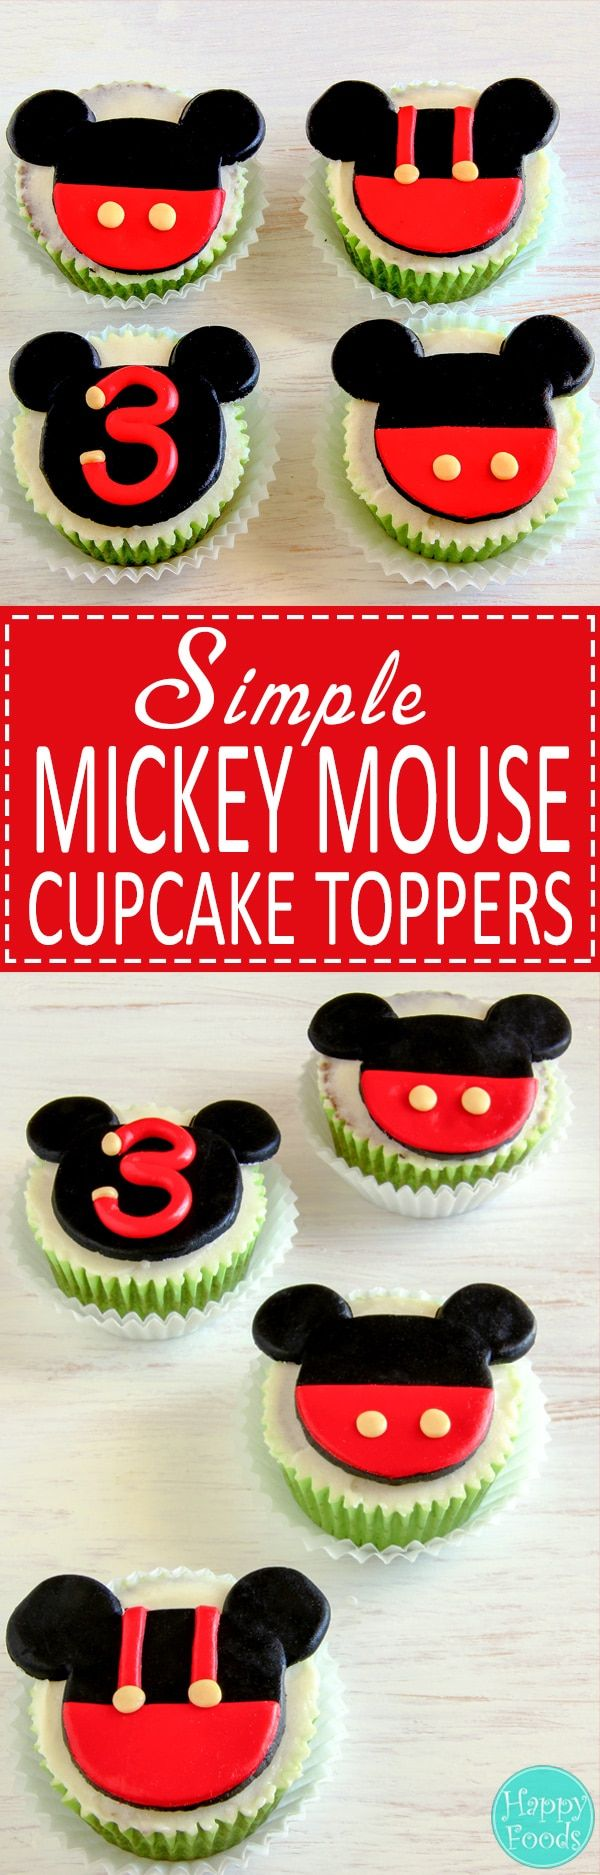 Fun and easy Mickey Mouse fondant cupcake toppers will make any Mickey Mouse fan happy. They are edible, cute and made with no special tools or cutters. Cake decorating tutorial via @happyfoodstube